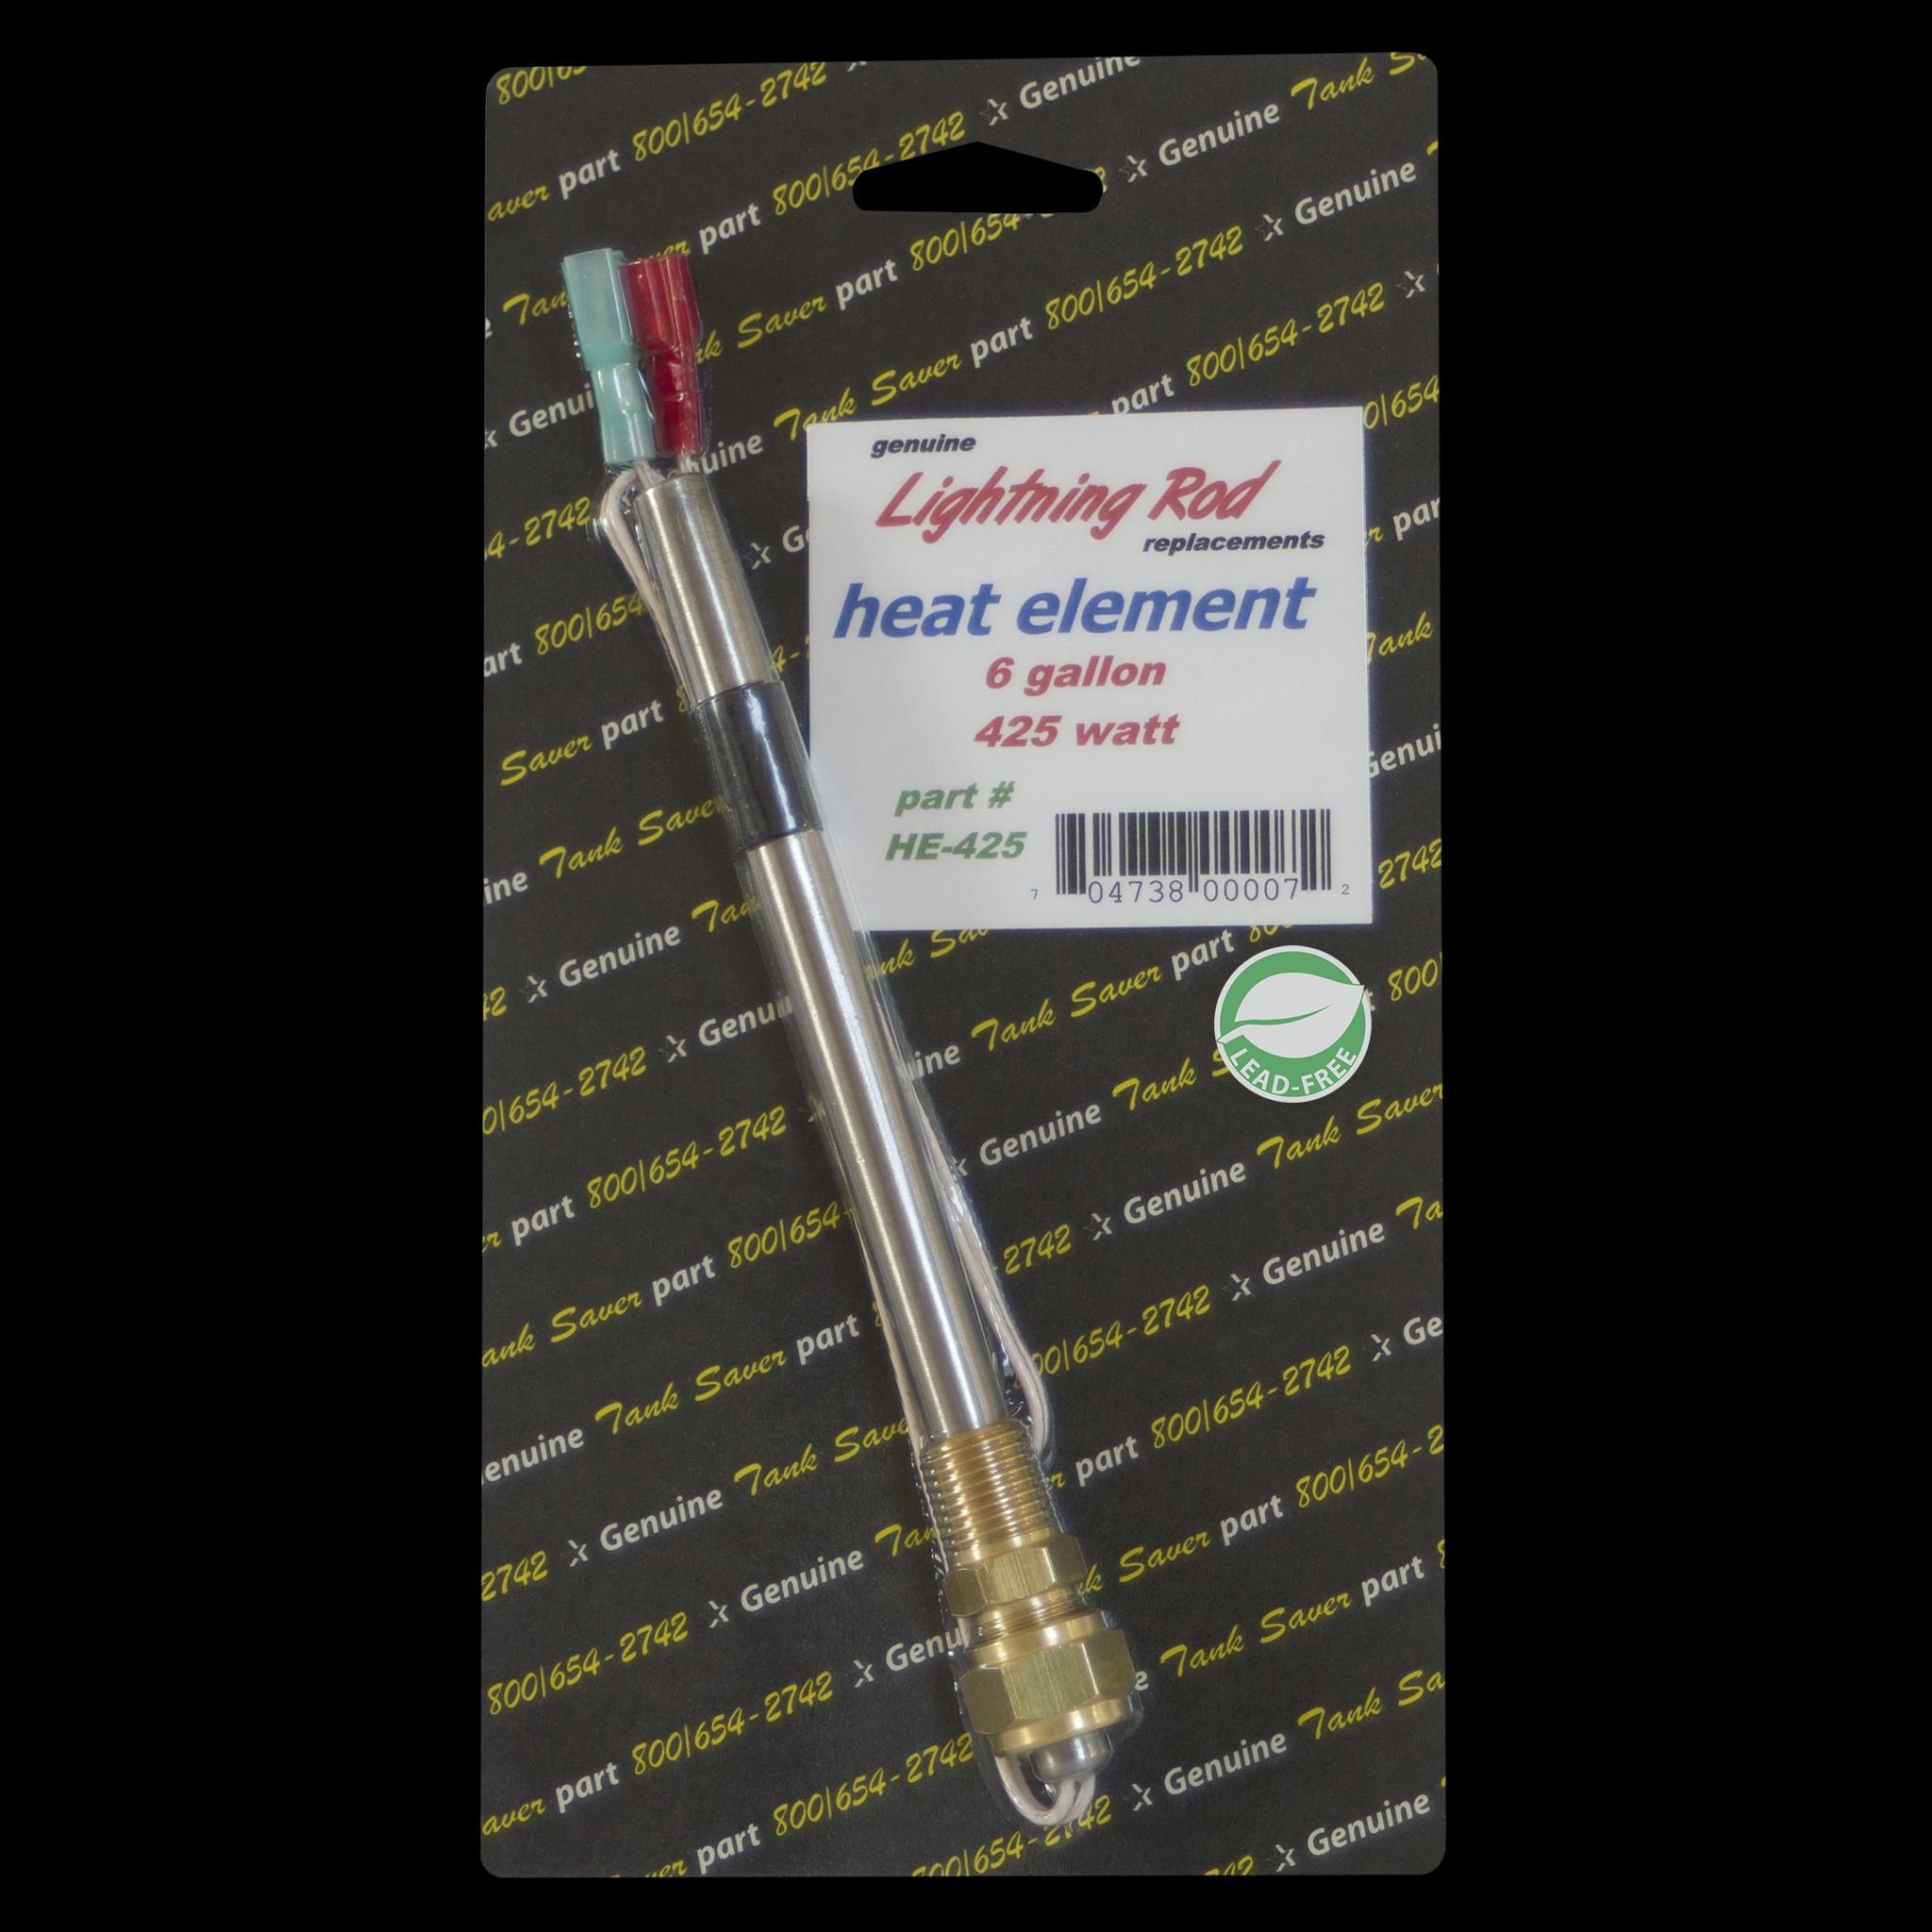 HE-425 Western Leisure Products Inc Water Heater Element Universal